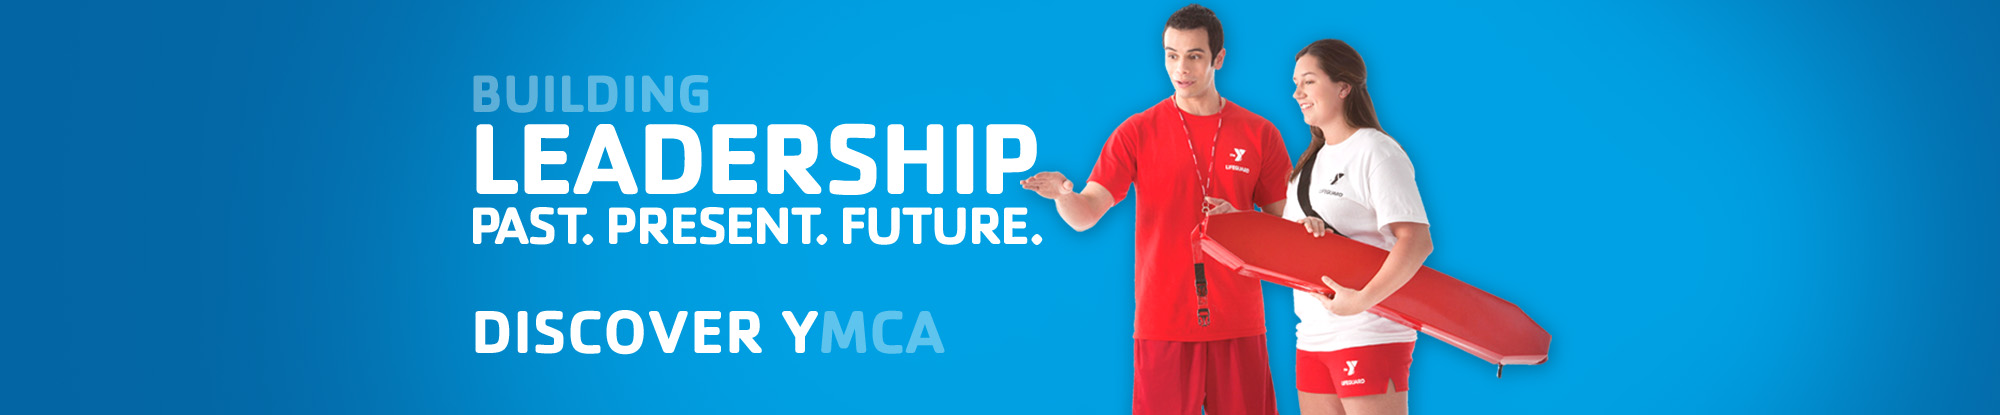 YMCA helps build strong community leaders - past, present, and future!